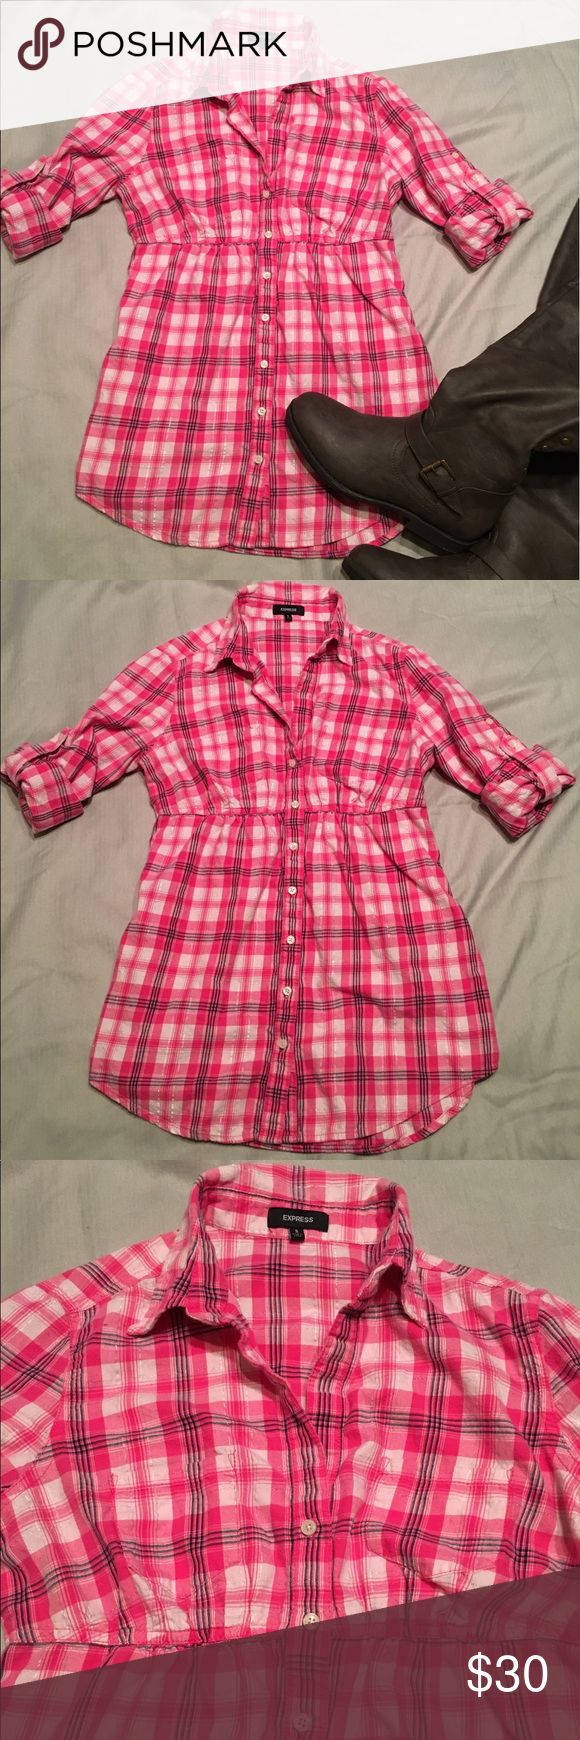 Express pink flannel shirt Express brand flannel shirt in size small. Mostly pink with some black, white, and silver. Sleeves can be worn down or folded up. Does not button all the way up. Fitted empire waist for a more feminine look. Excellent condition. Express Tops Button Down Shirts